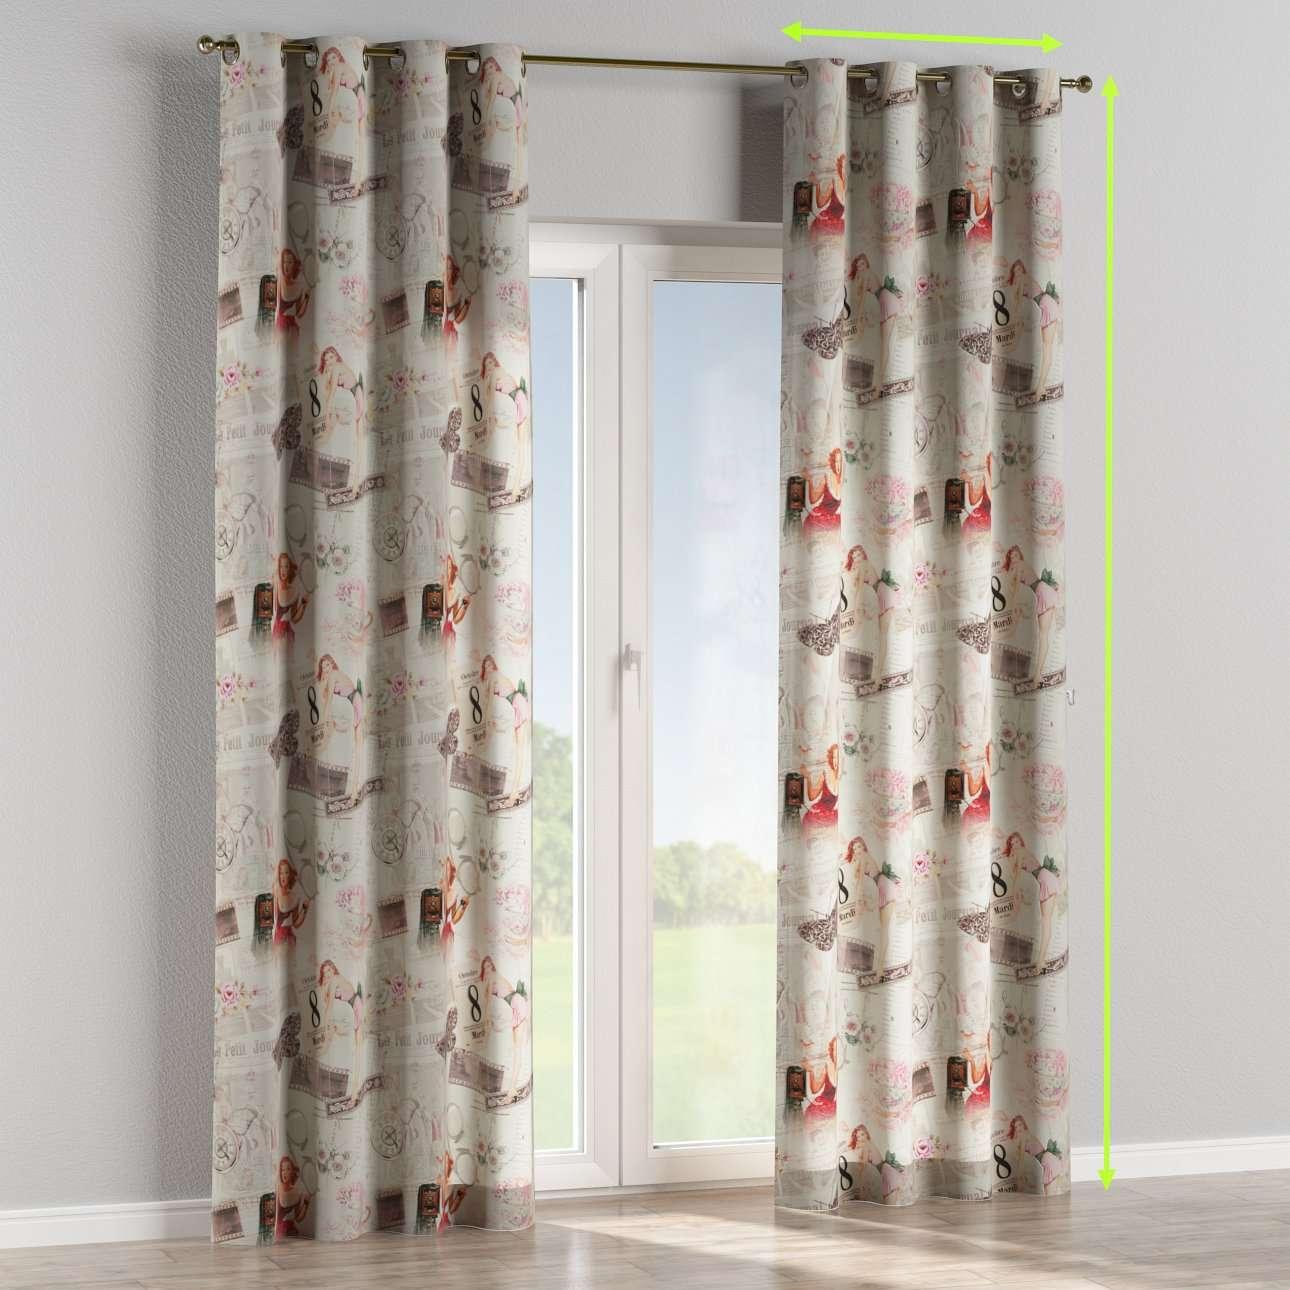 Eyelet lined curtains in collection Freestyle, fabric: 140-99